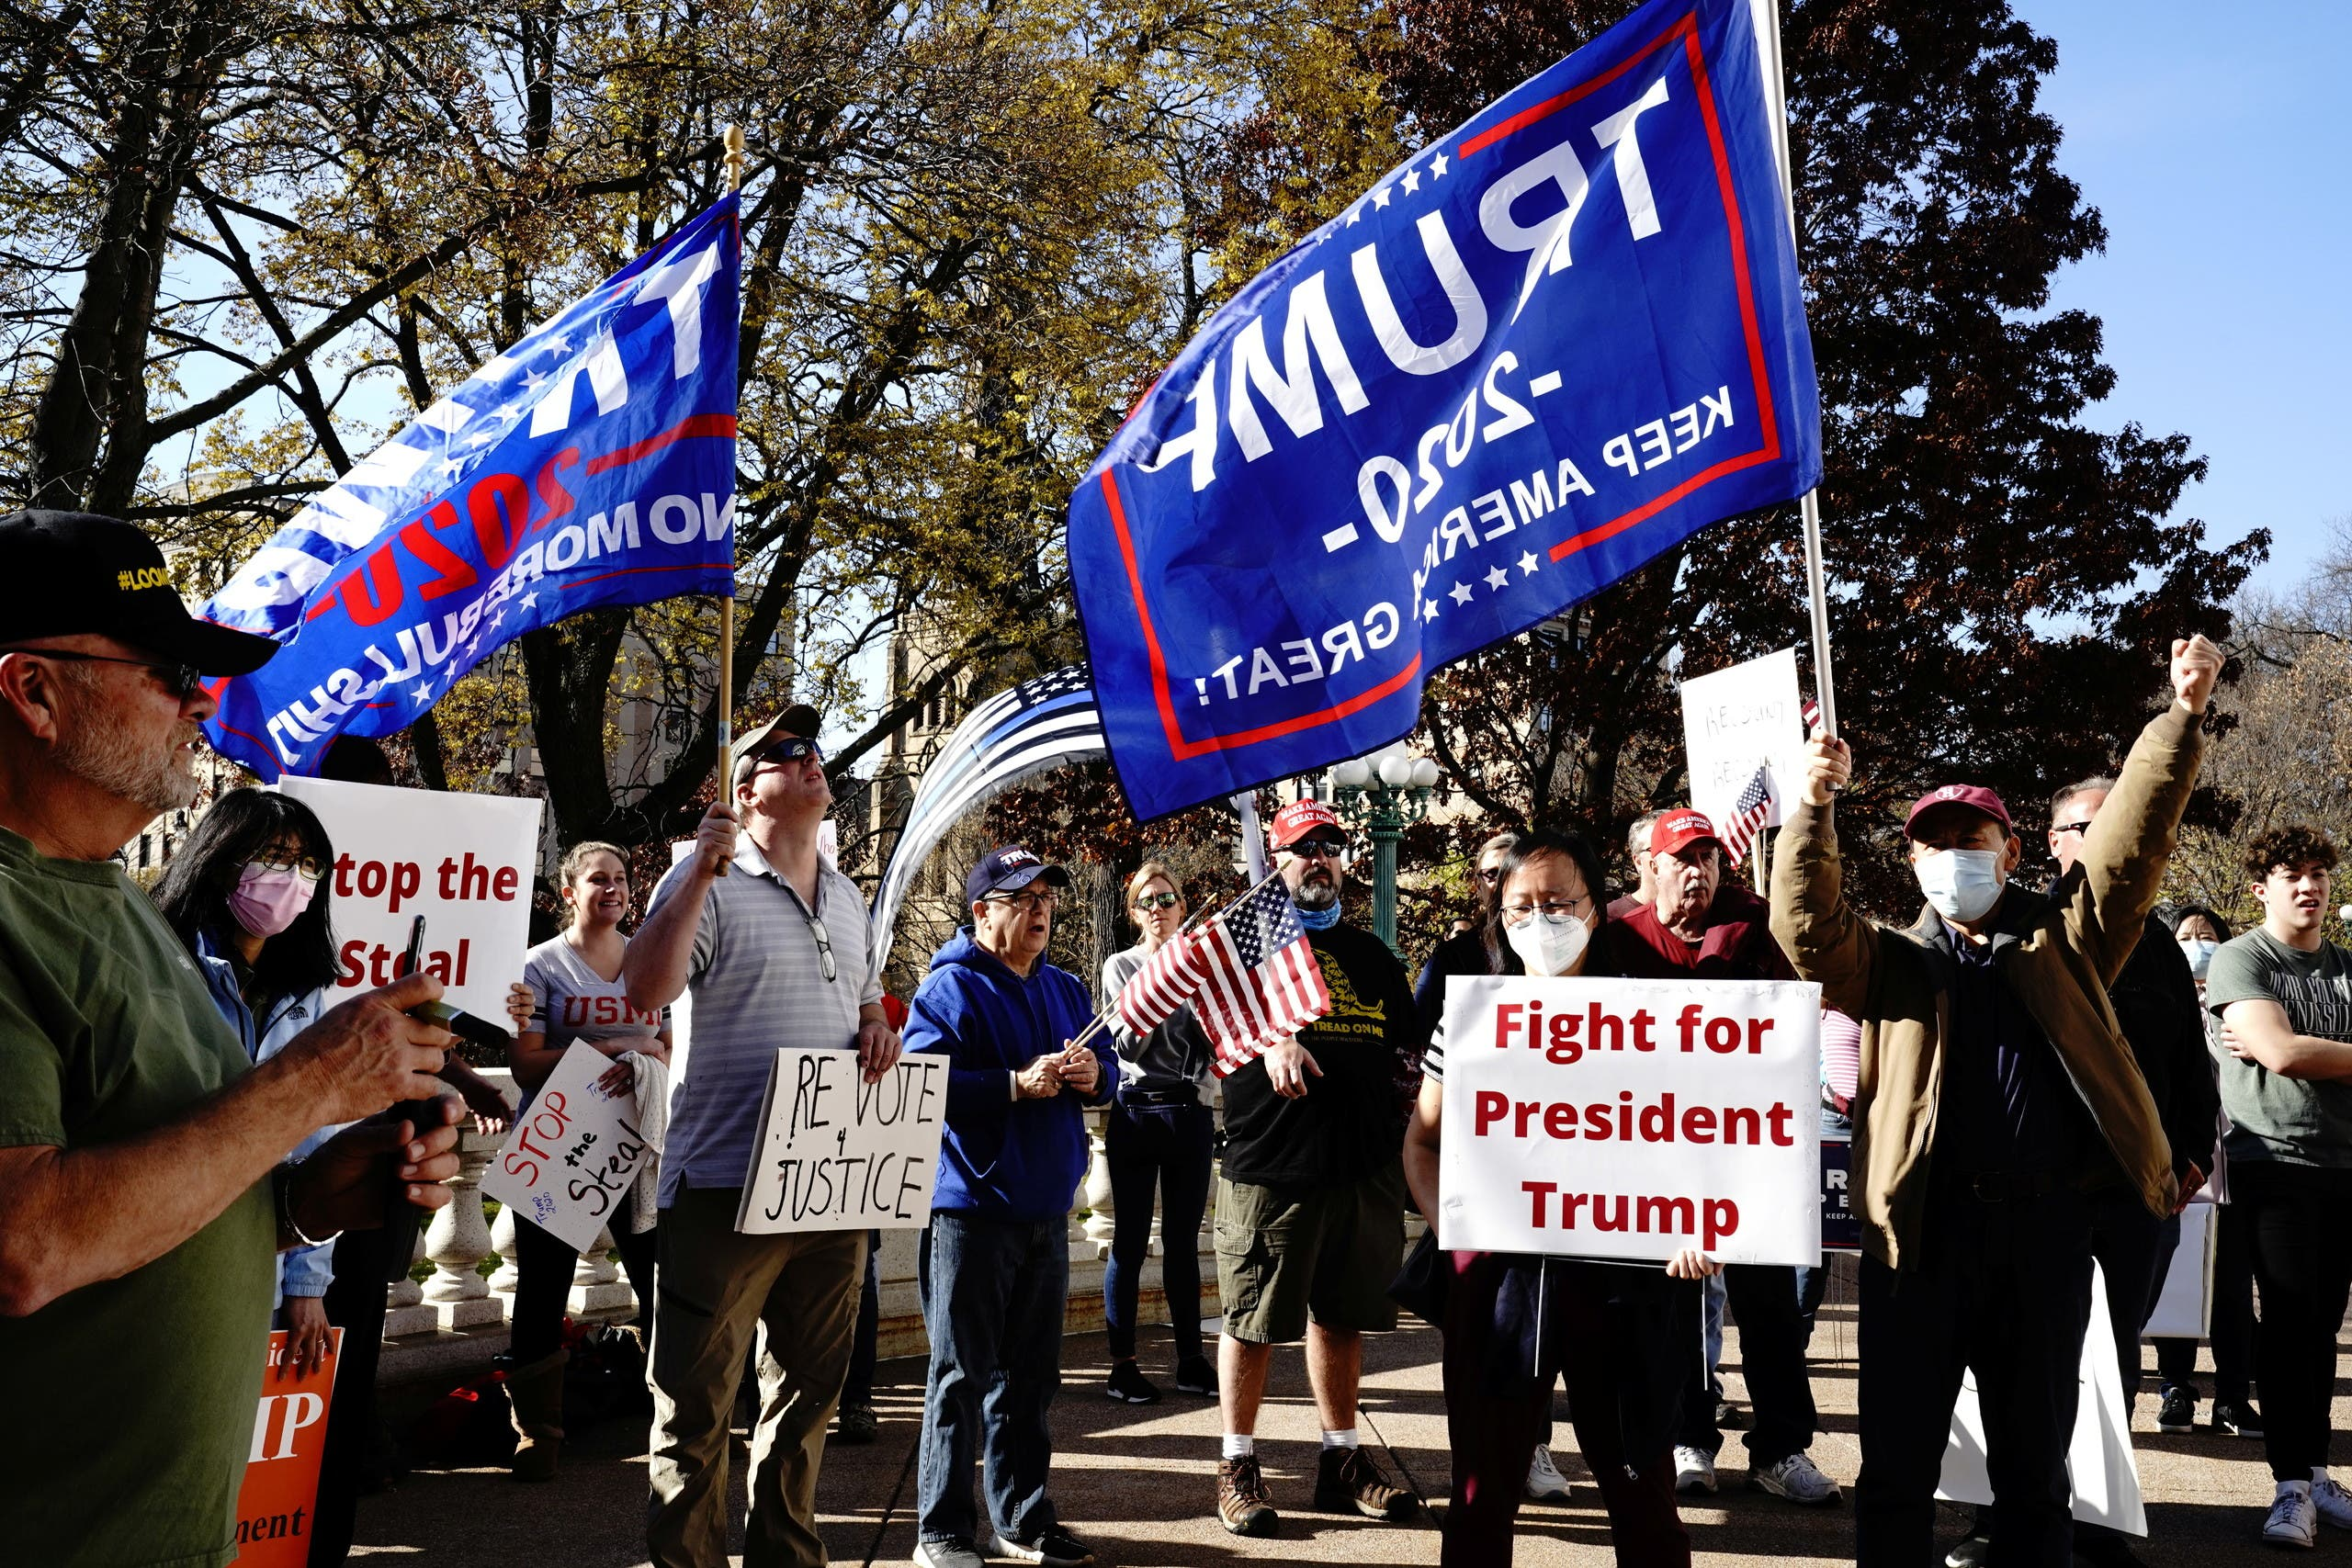 Supporters of President Donald Trump attend a 'Stop the Steal' protest outside the Wisconsin State Capitol in Madison, Wisconsin, U.S., November 7, 2020. (Reuters)